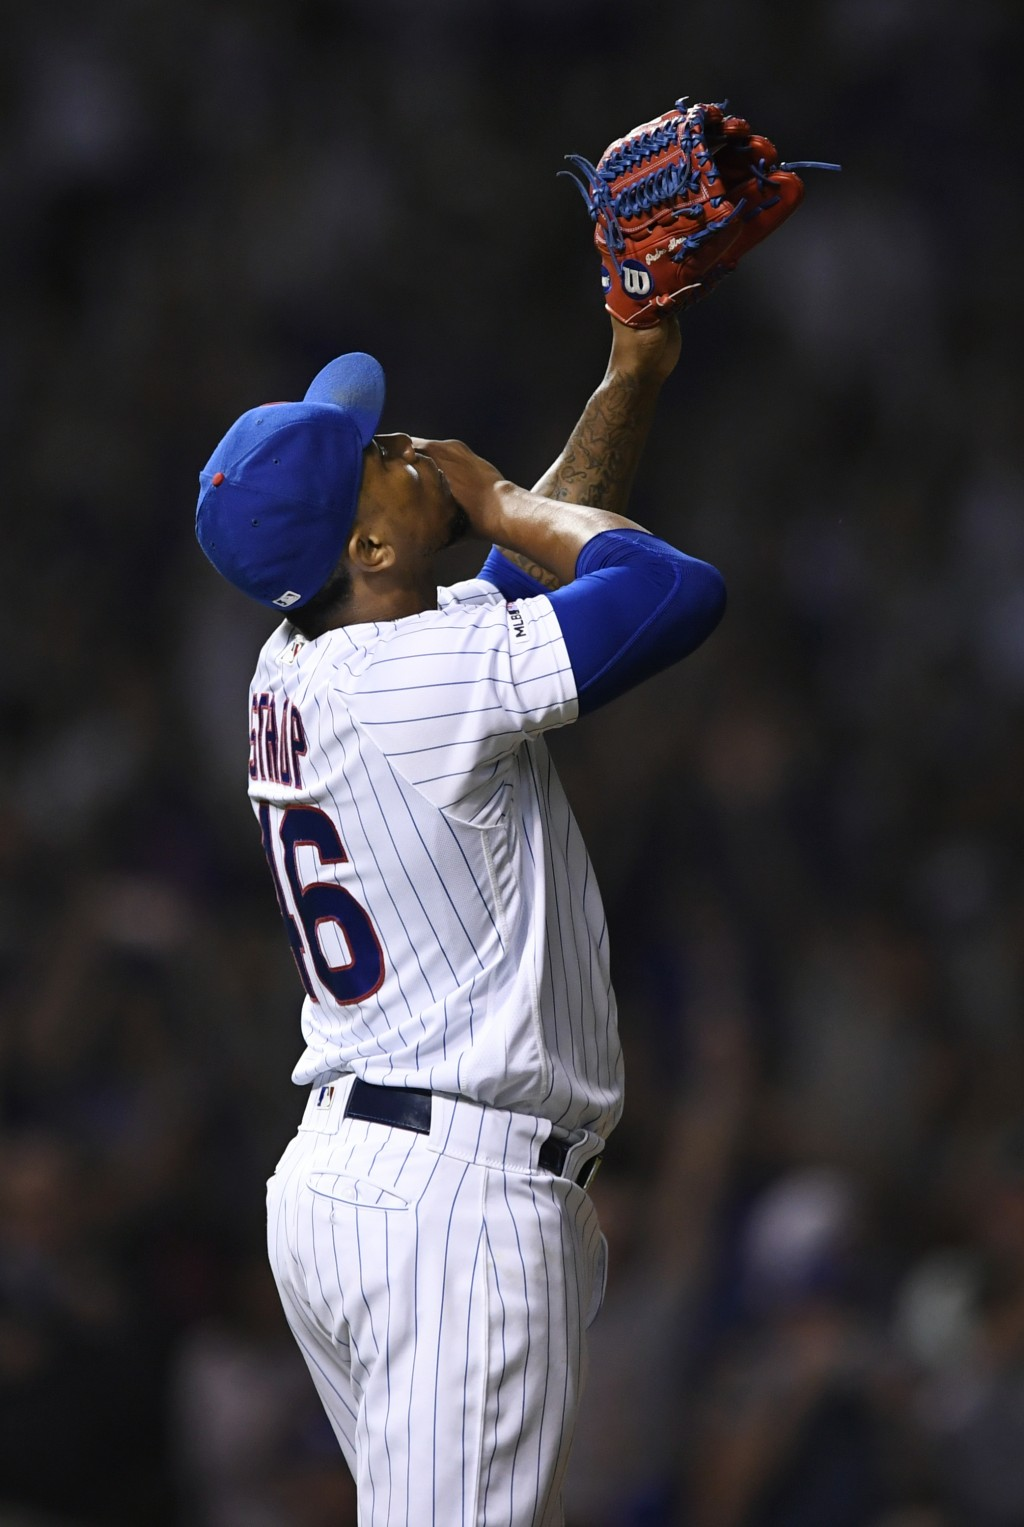 Chicago Cubs closing pitcher Pedro Strop celebrates after defeating the Colorado Rockies 6-3 during a baseball game Tuesday, June 4, 2019, in Chicago.